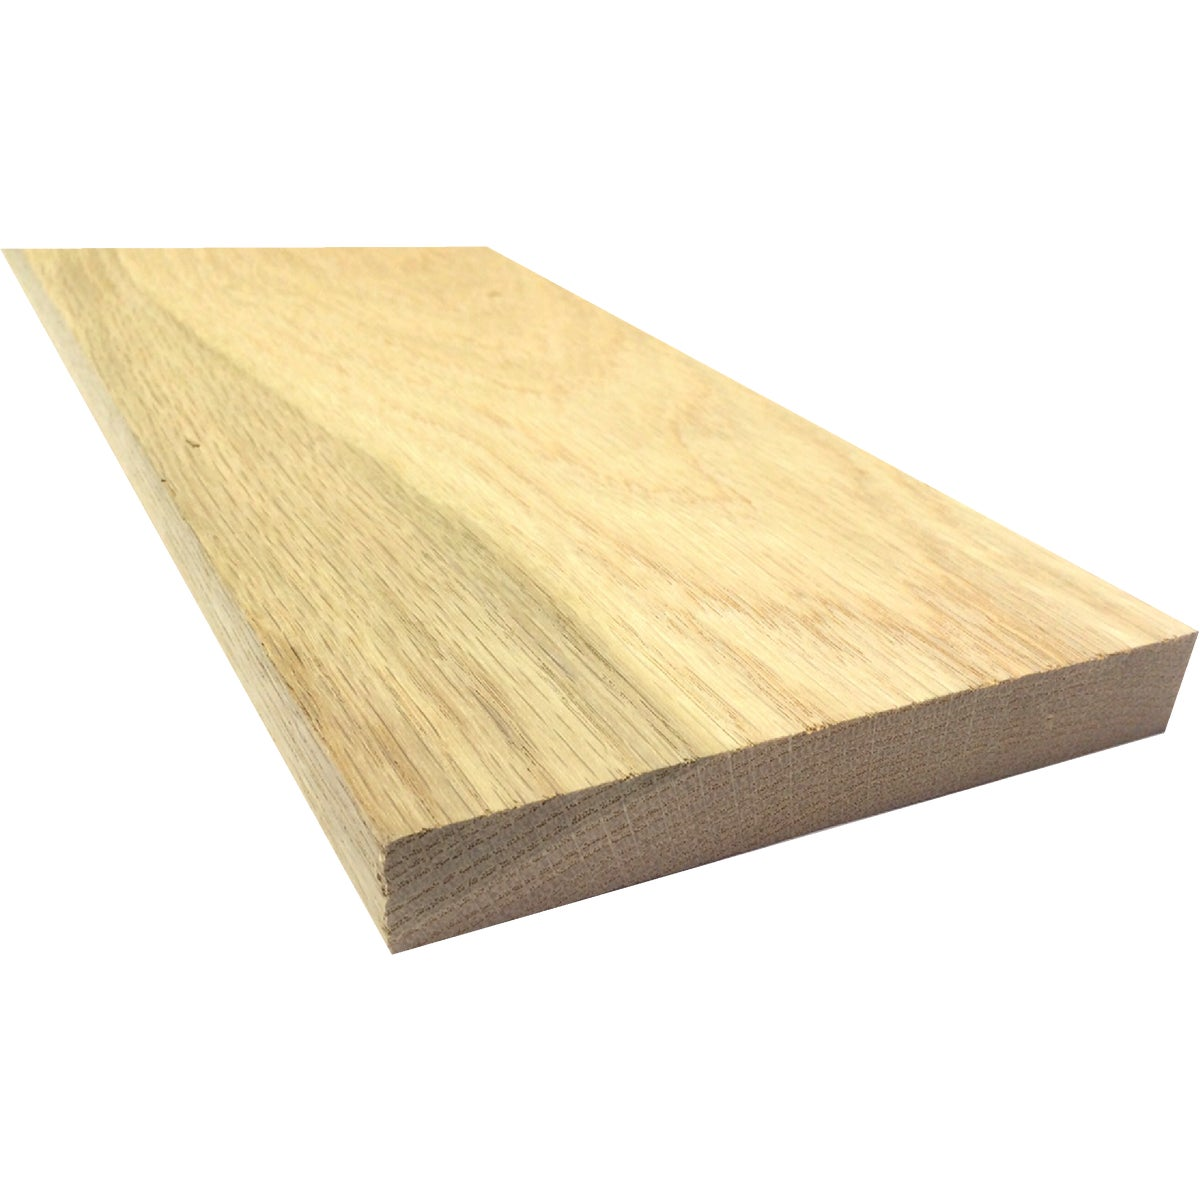 "1X6""X3' OAK BOARD - PB19536 by Waddell Mfg Company"